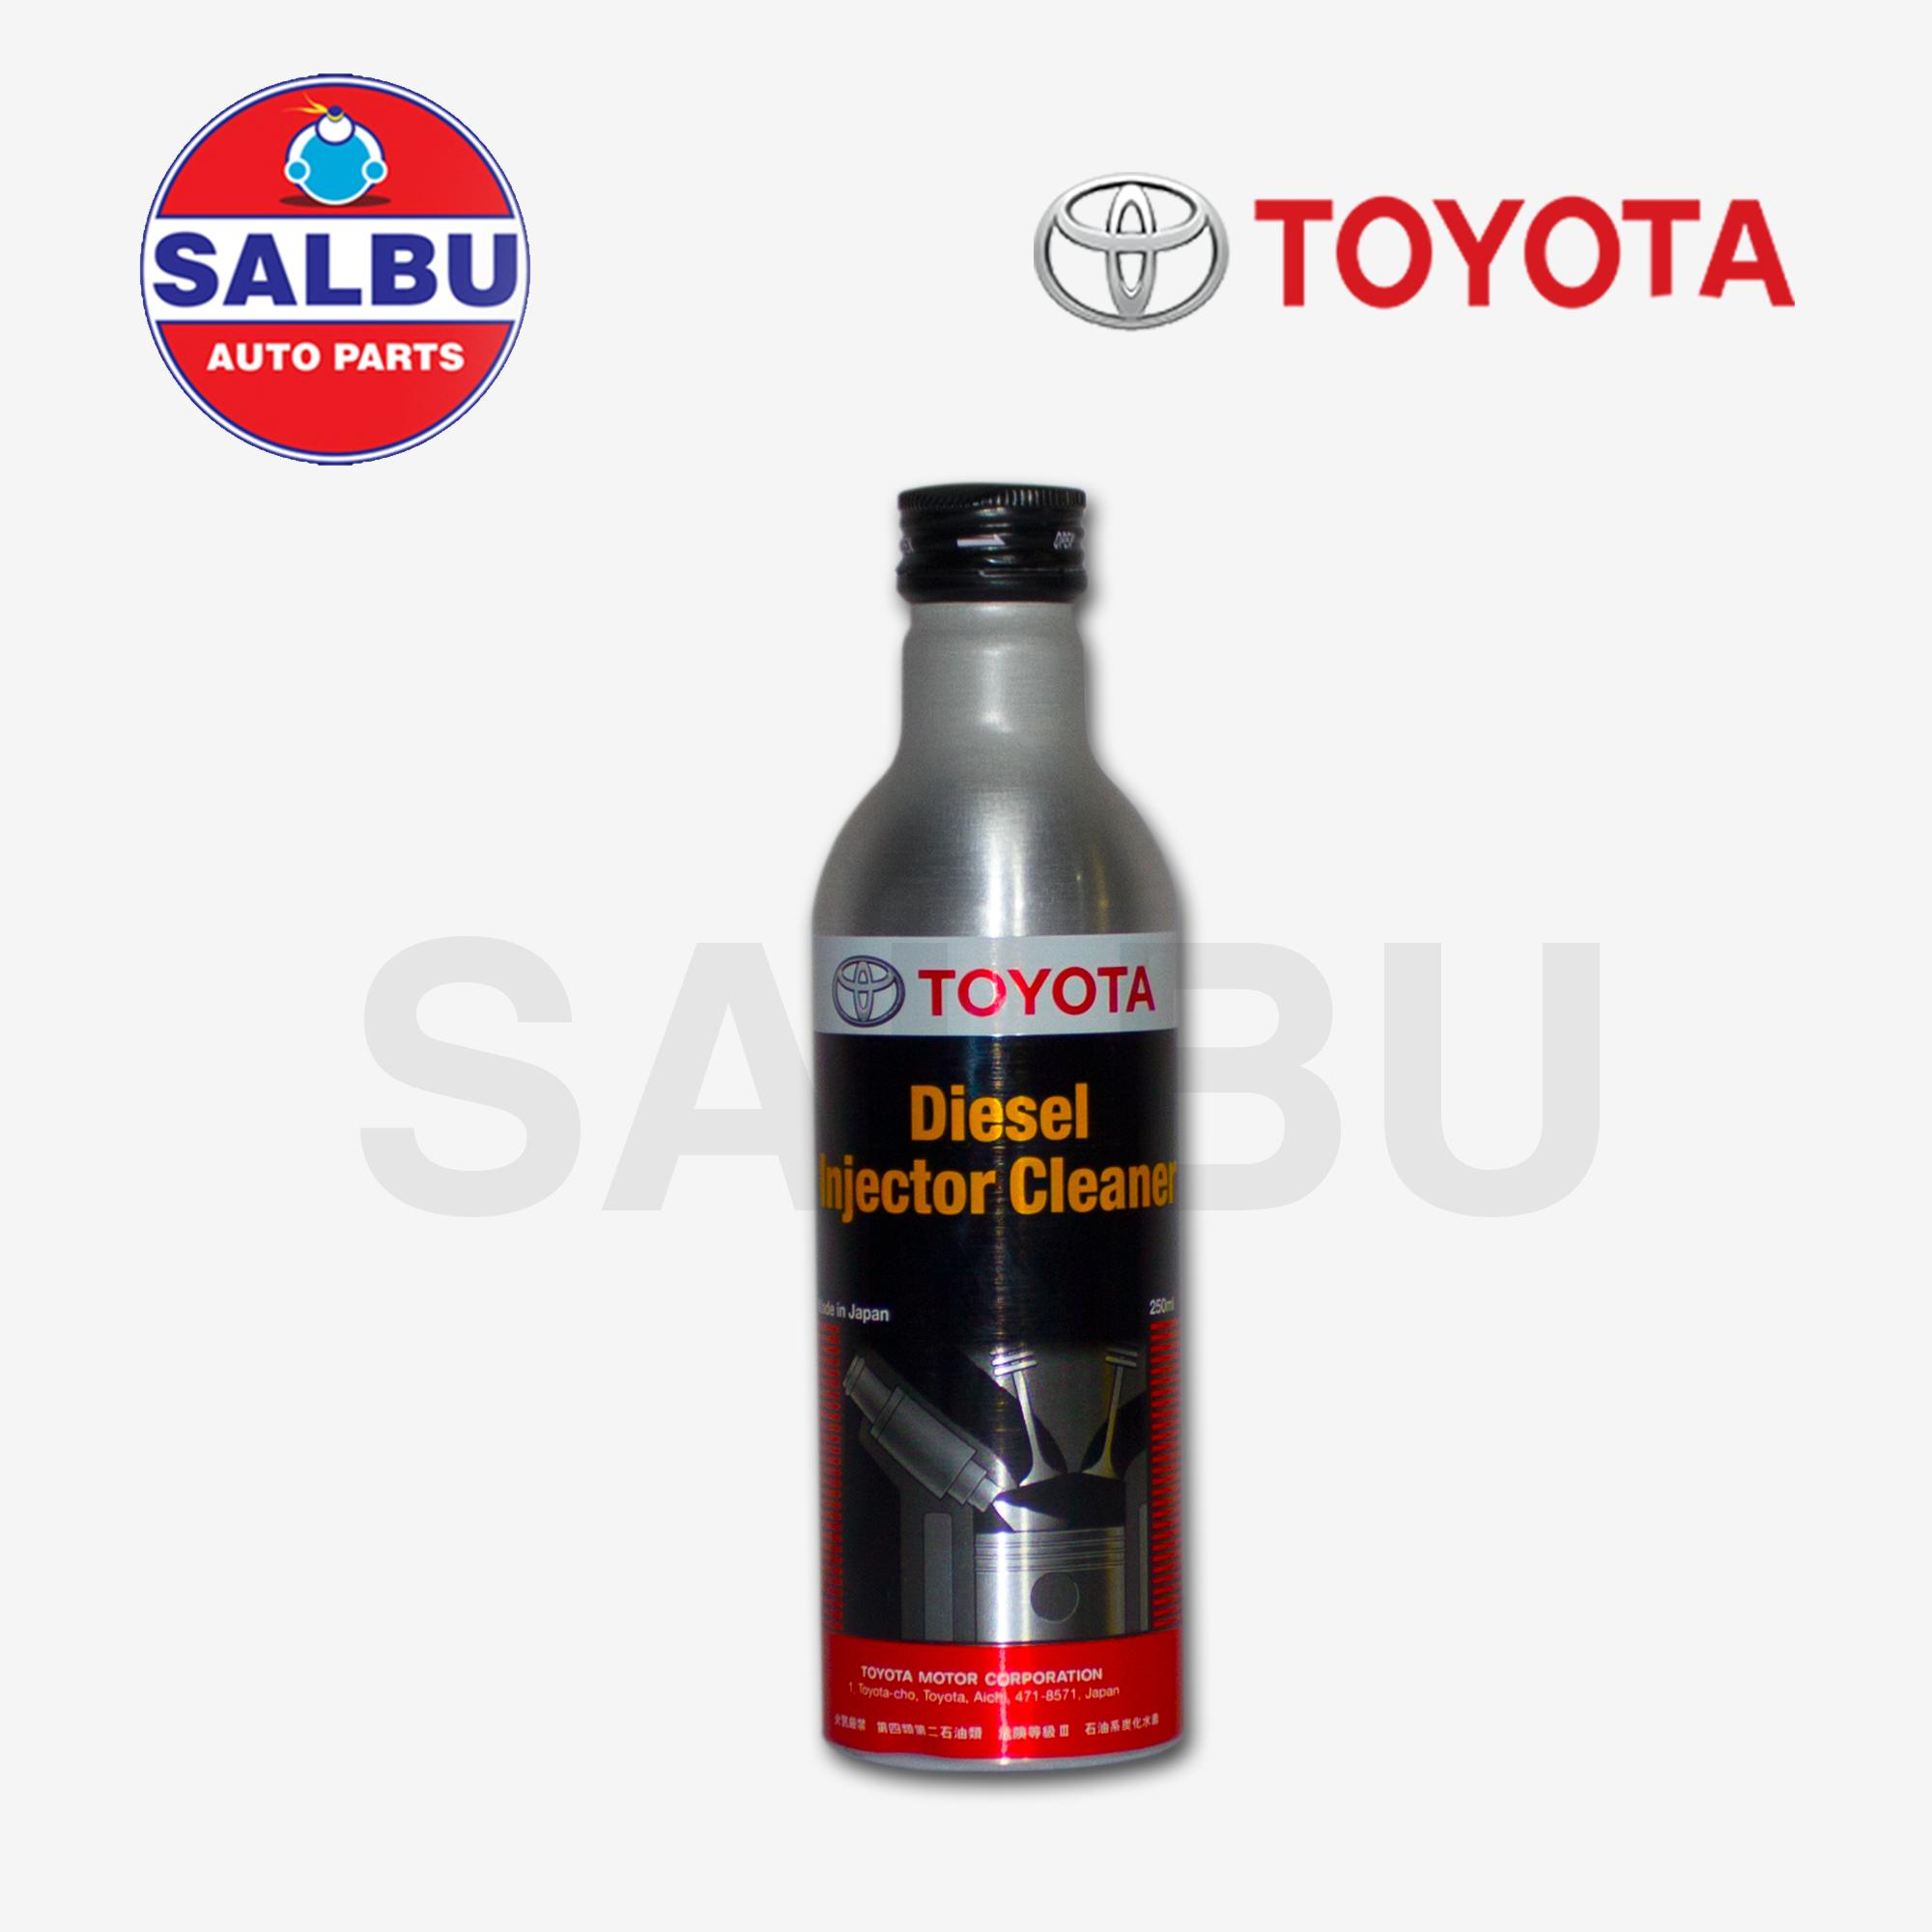 Toyota Philippines Price List Car Parts Accessories For 2012 Camry Headlight Fuse Diagram Diesel Injector Cleaner 250ml